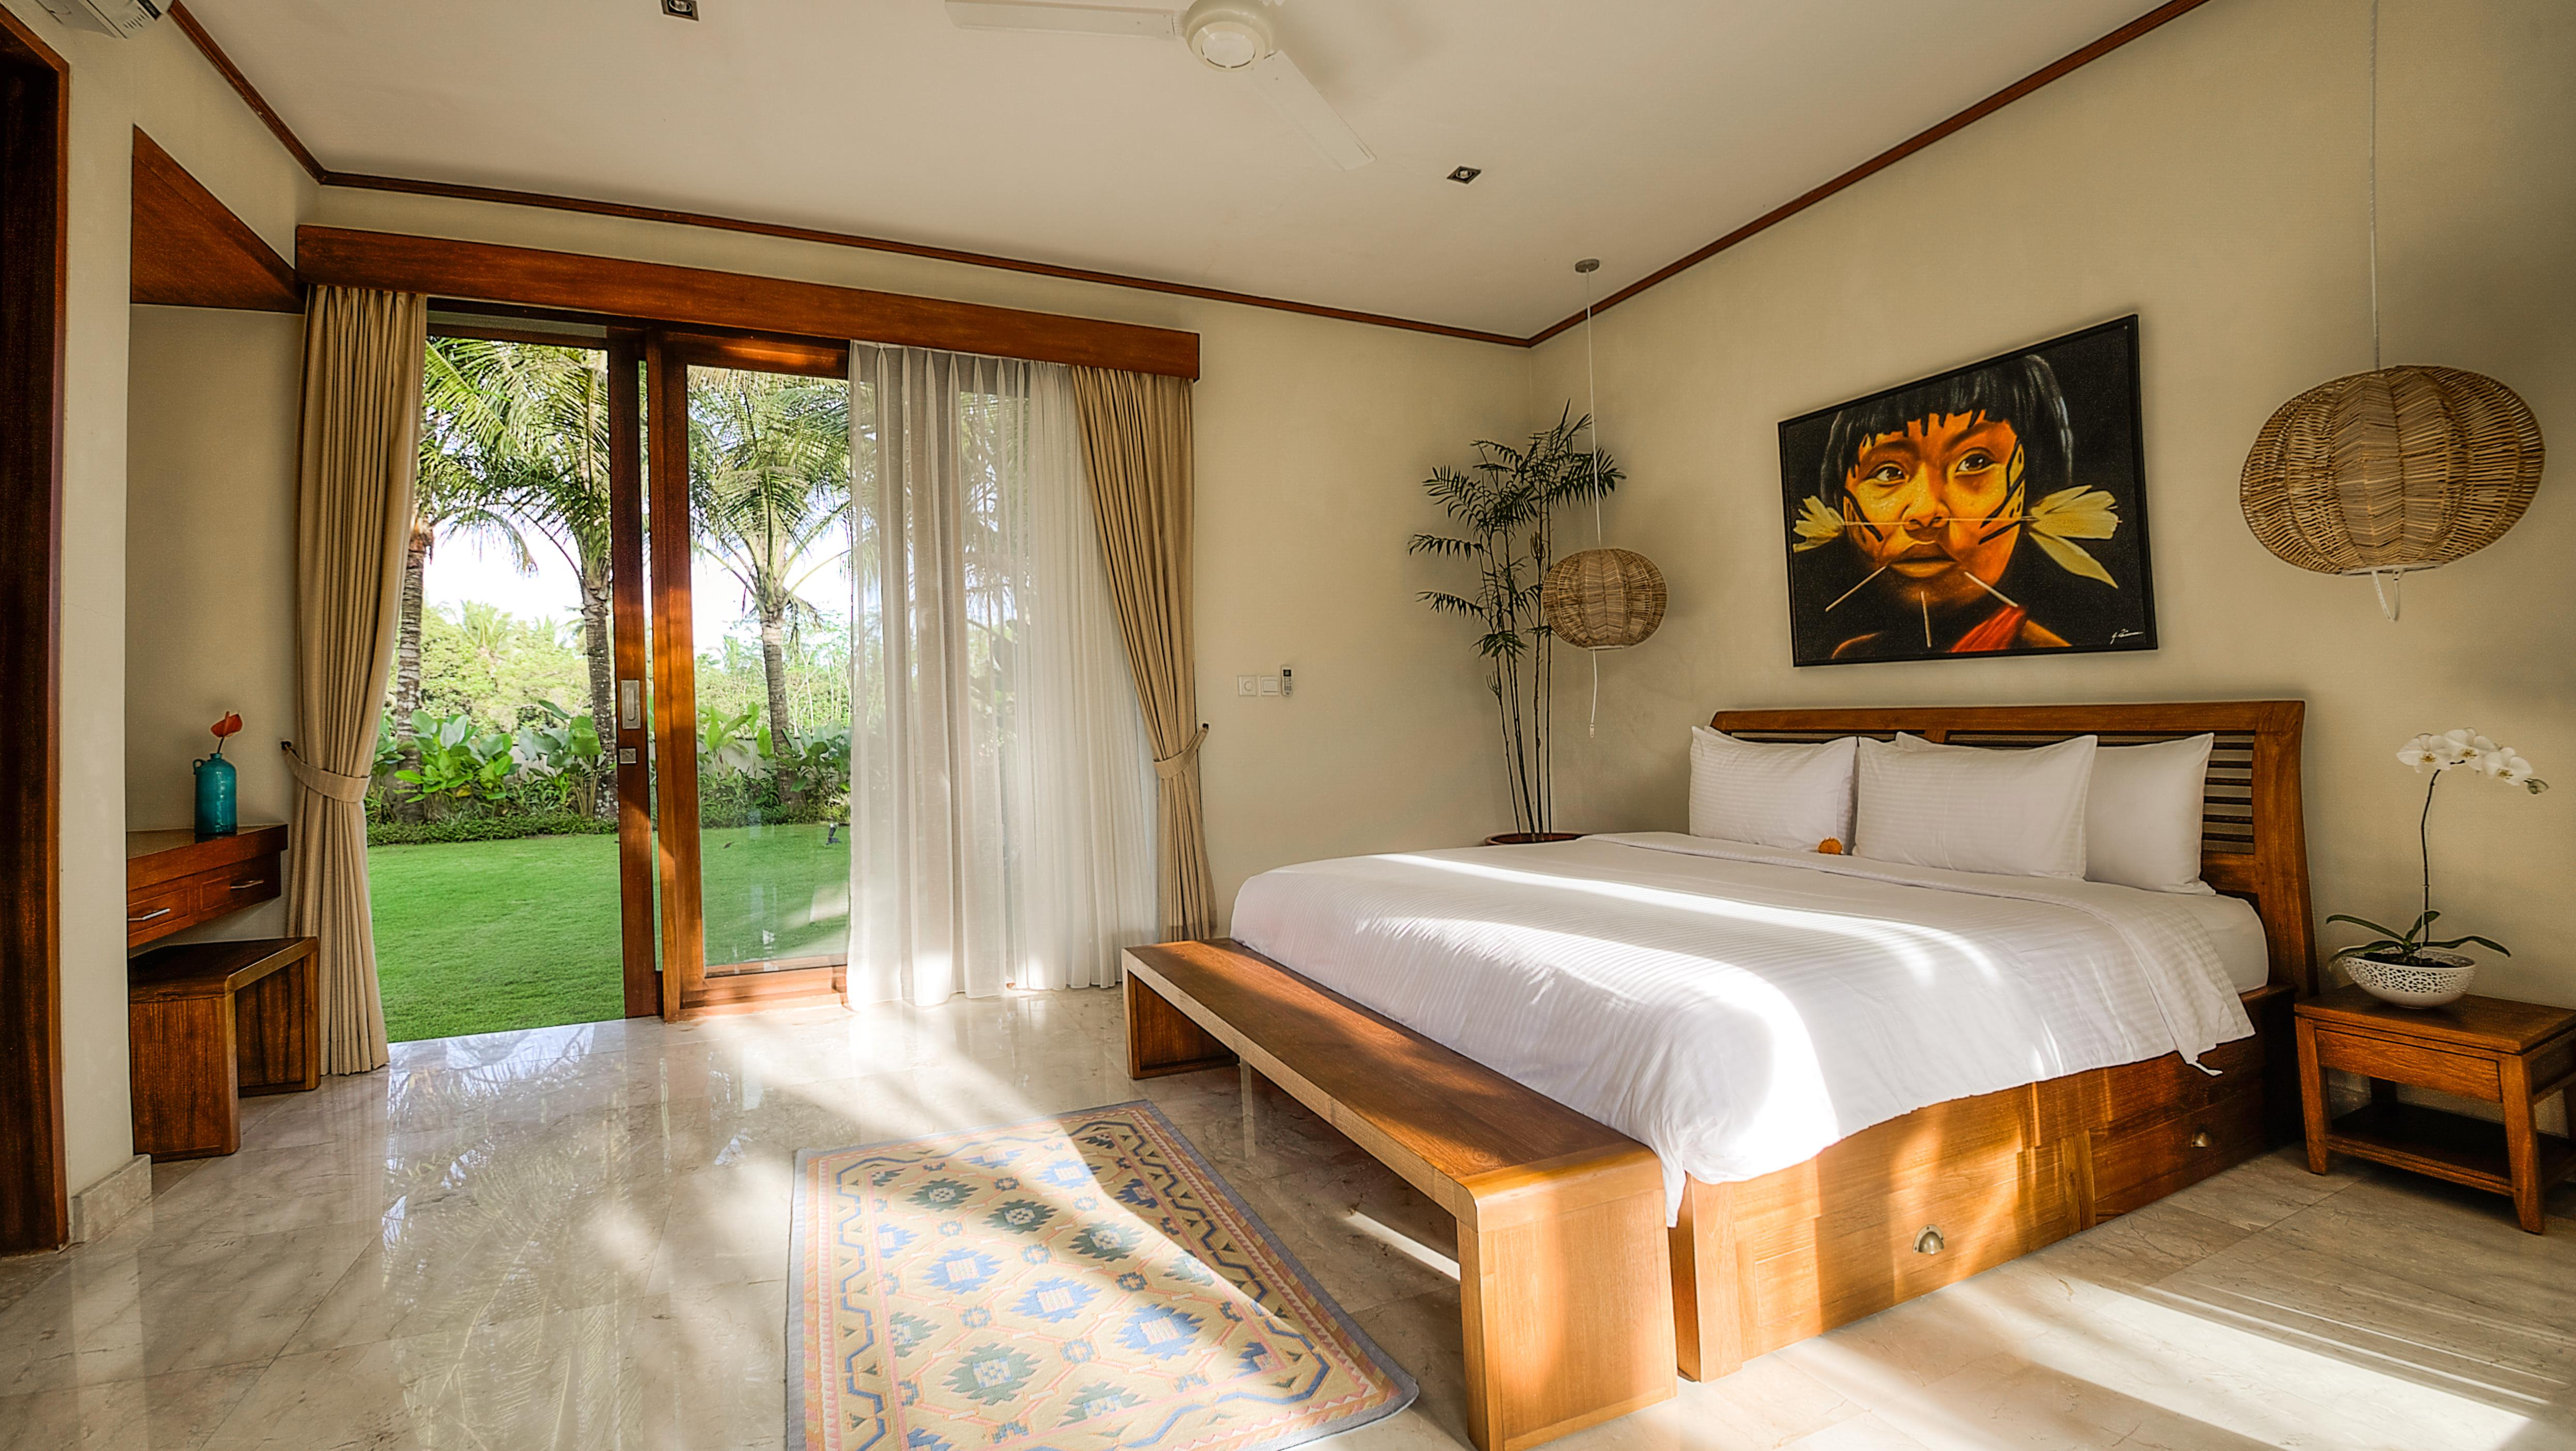 Bedroom with Garden View - The Malabar House - Ubud, Bali